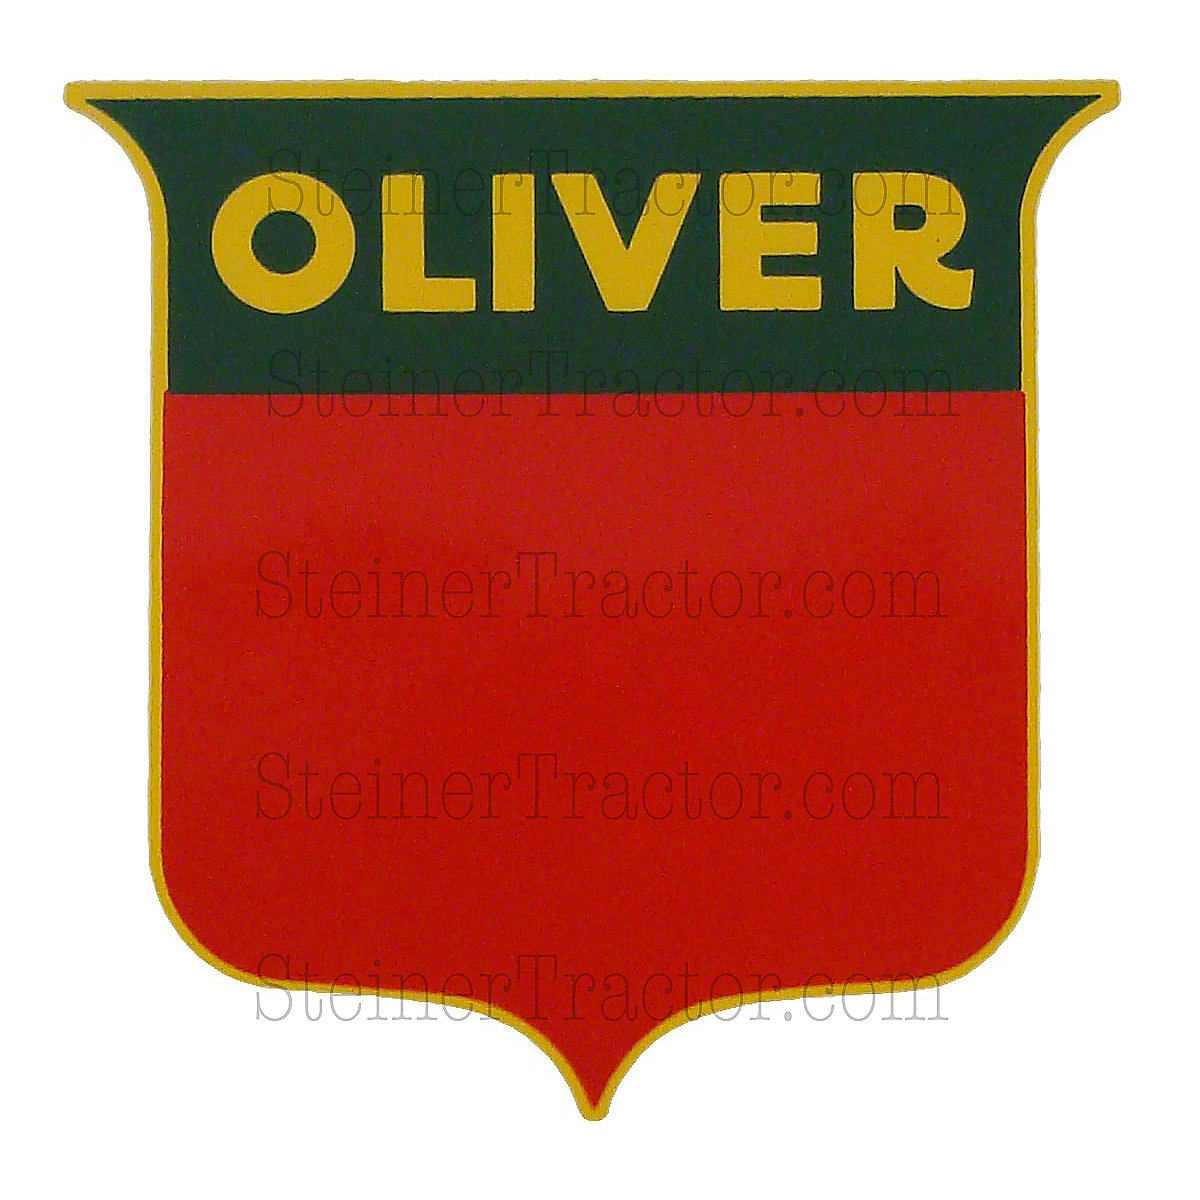 Oliver tractor Logos